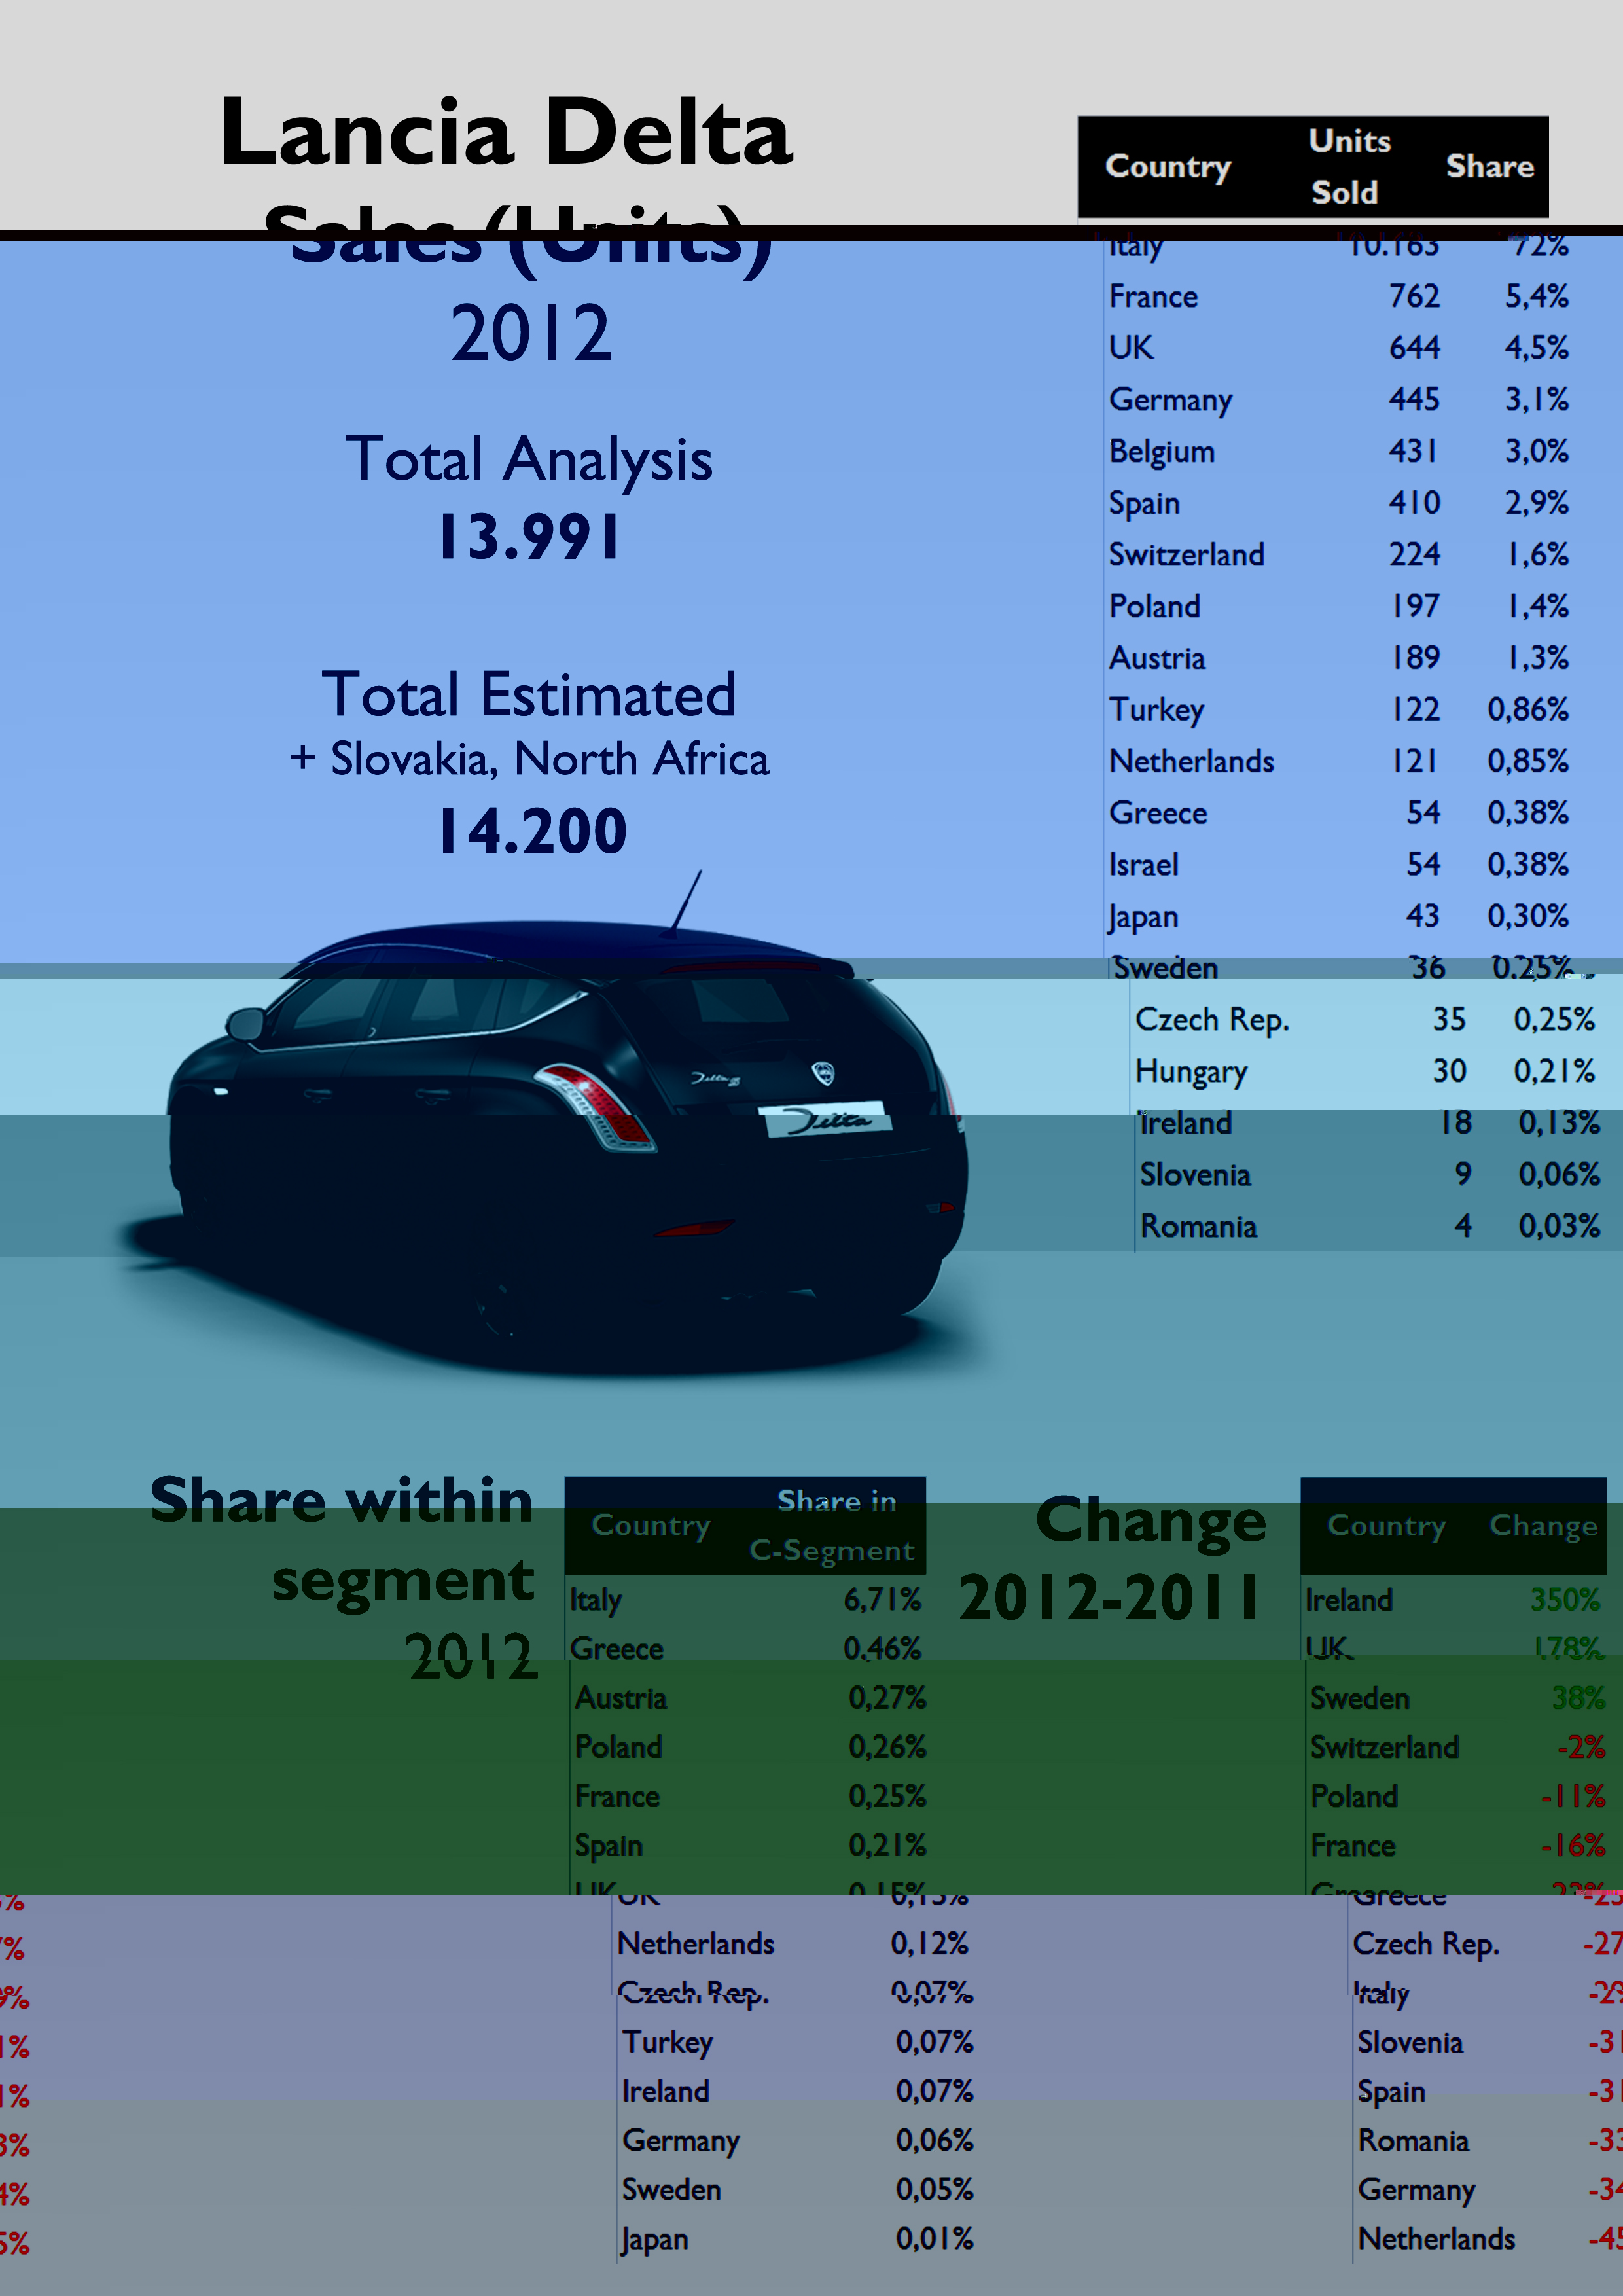 lancia-delta-world-wide-registrations-by-country-2012.jpg